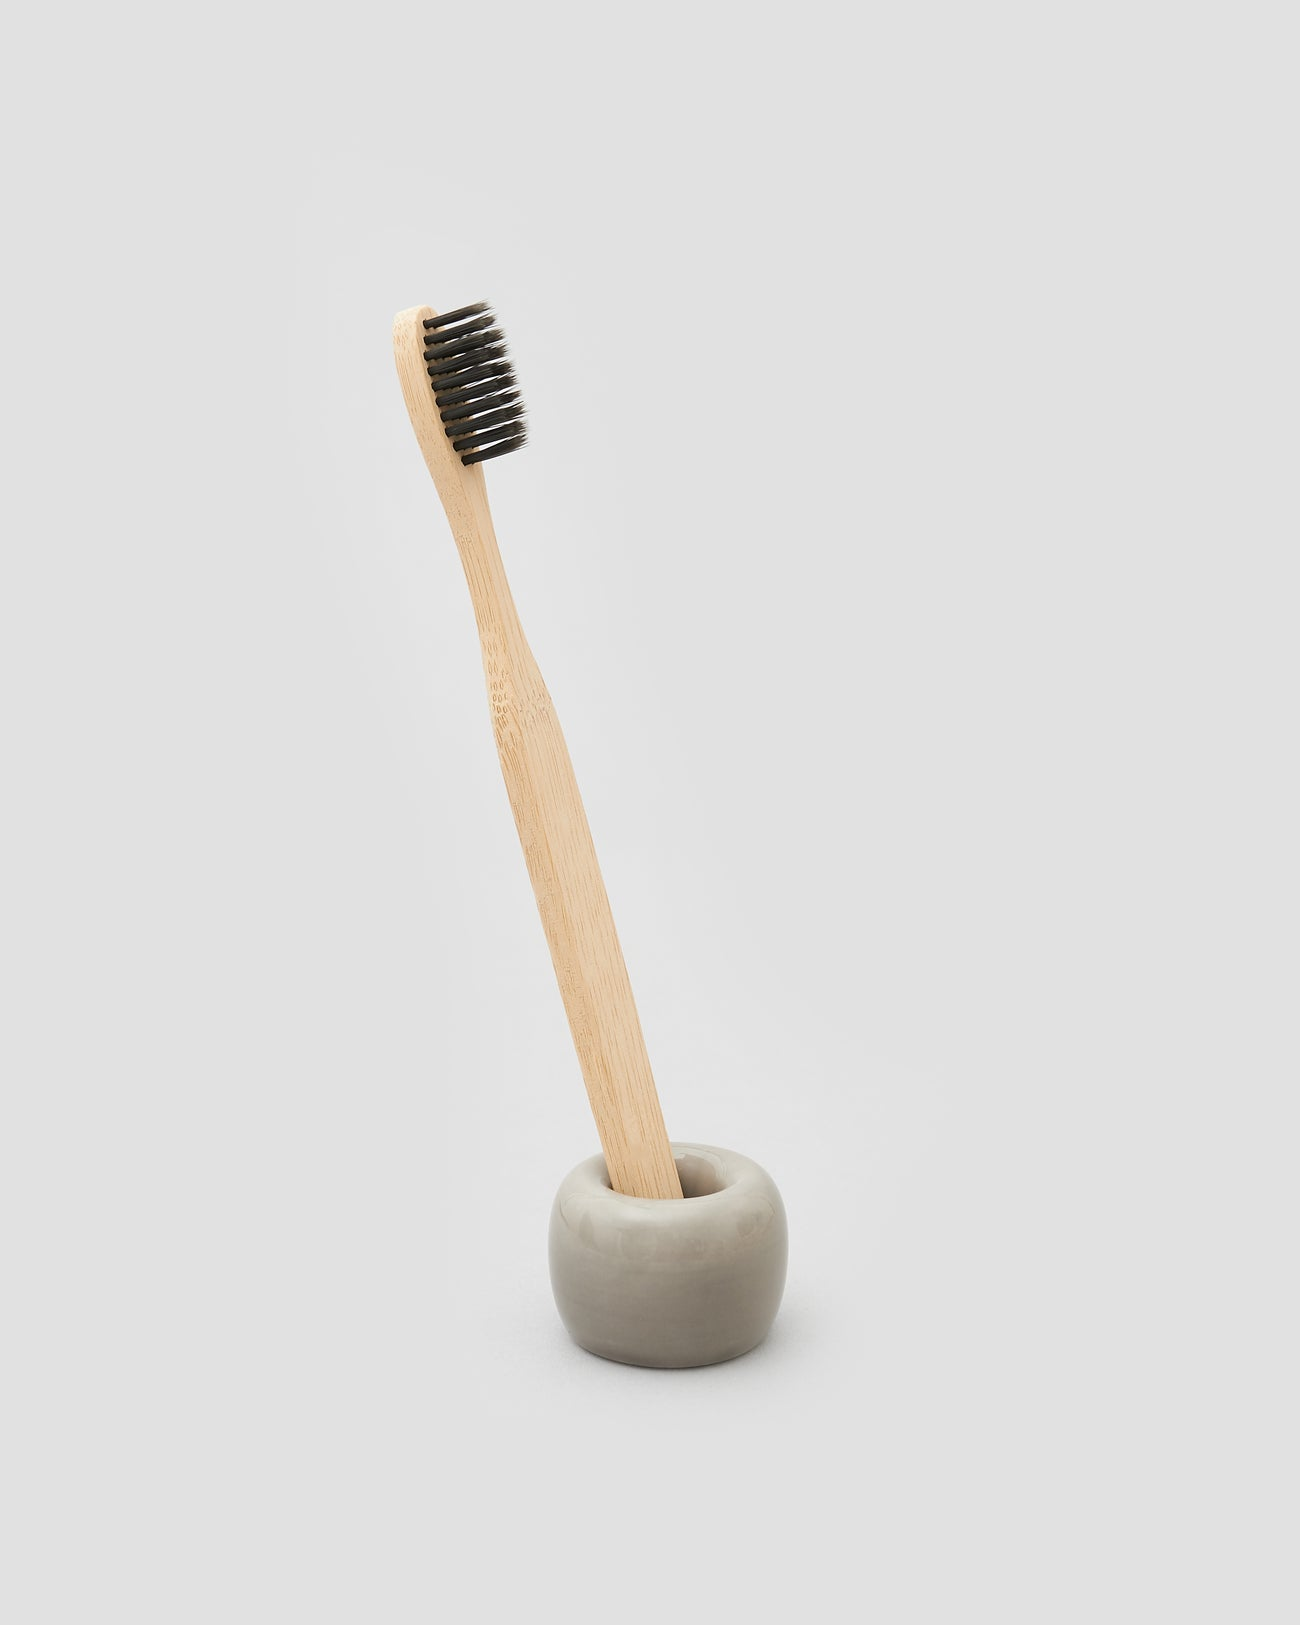 Bamboo Toothbrush with black bristles, Eco friendly toothbrush that can be composted | 'JENTL